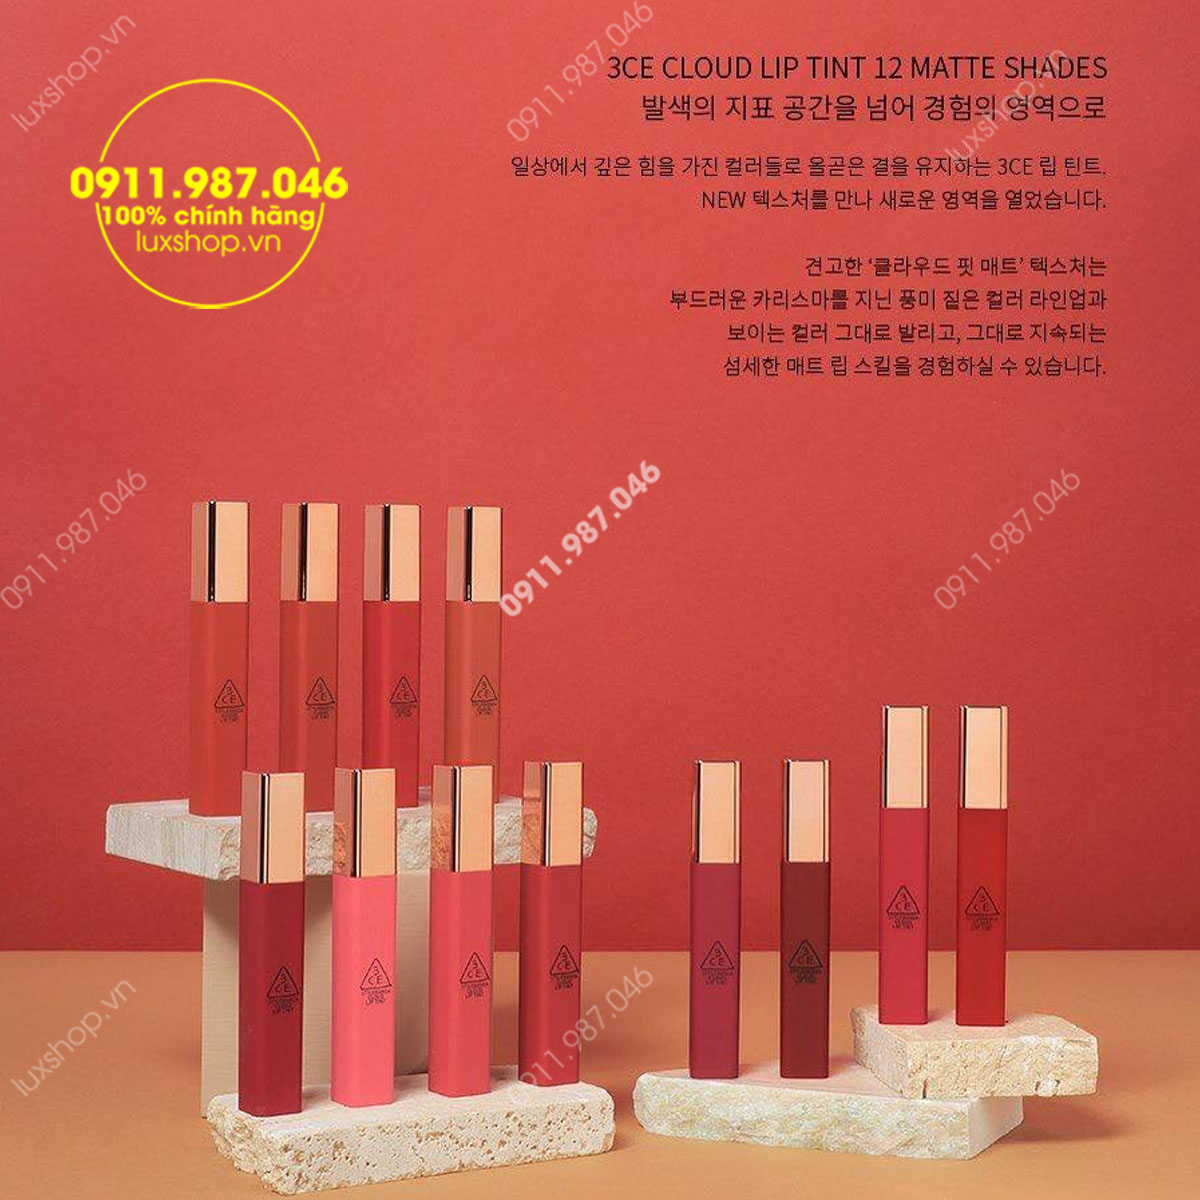 son-kem-li-3ce-stylenanda-cloud-lip-tint-chinh-hang-han-quoc